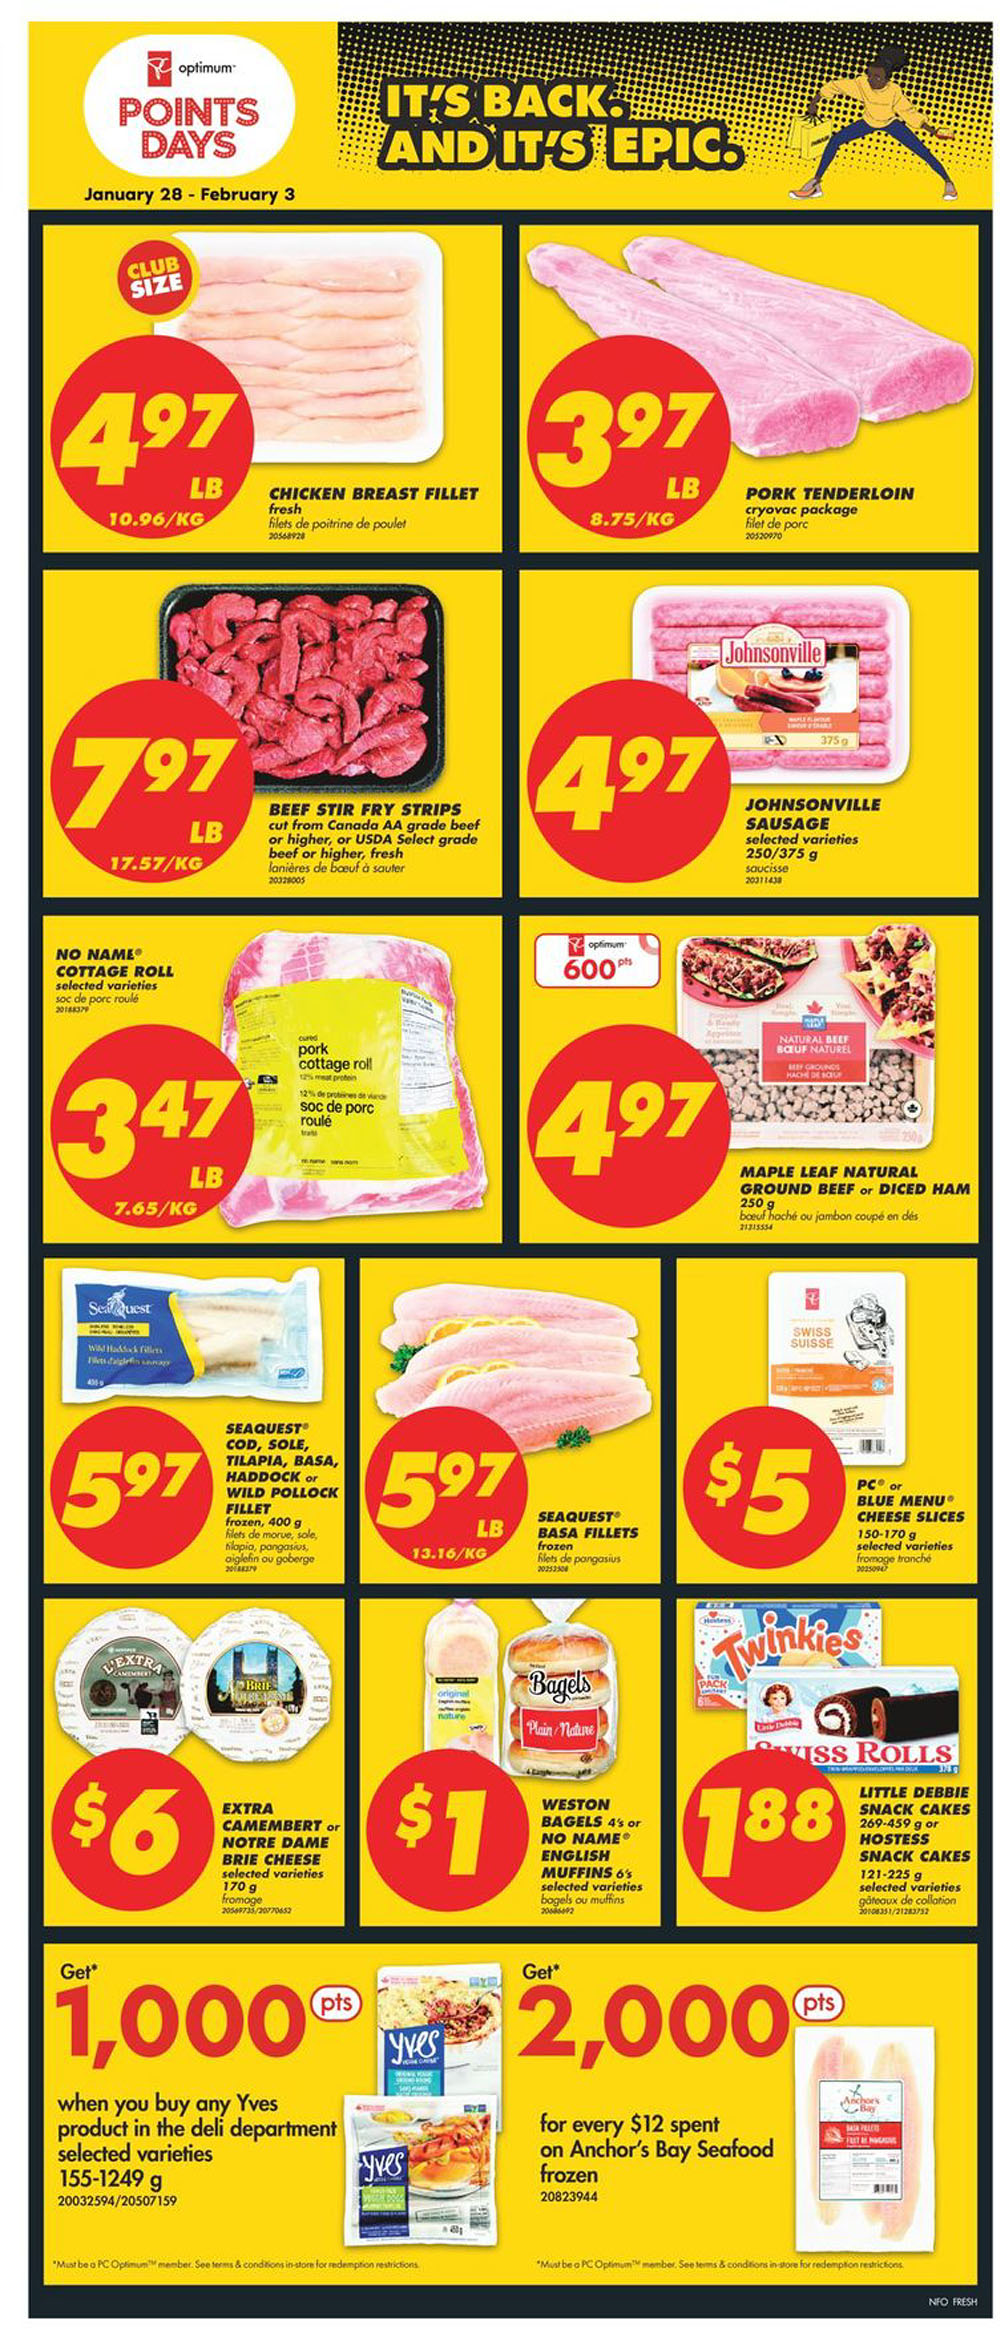 No Frills - Weekly Flyer Specials - Page 11